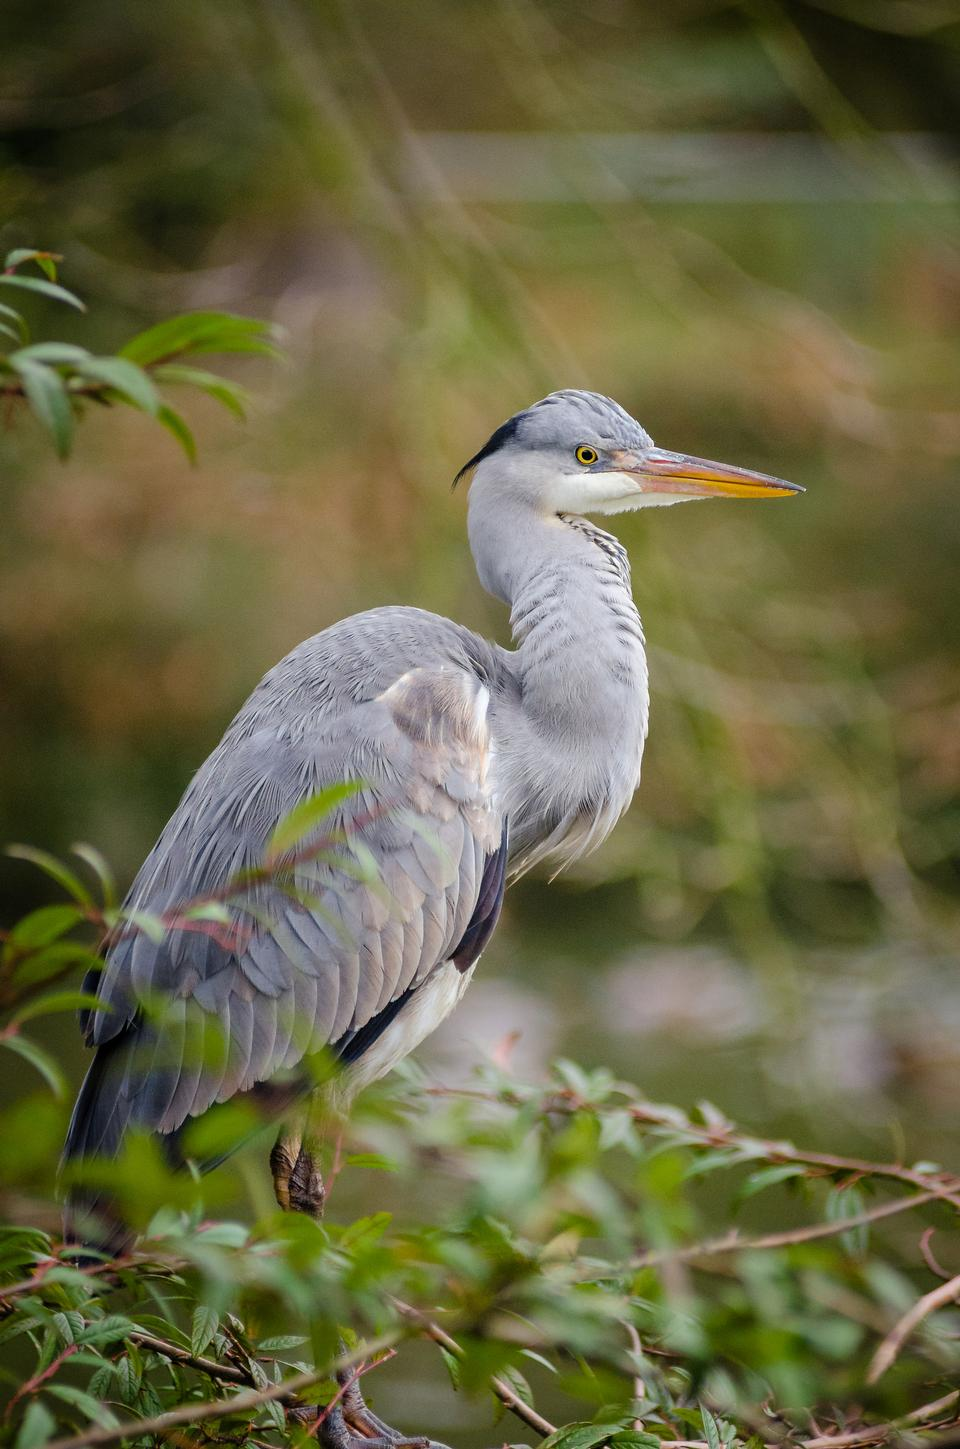 Free download high resolution image - free image free photo free stock image public domain picture  Grey heron